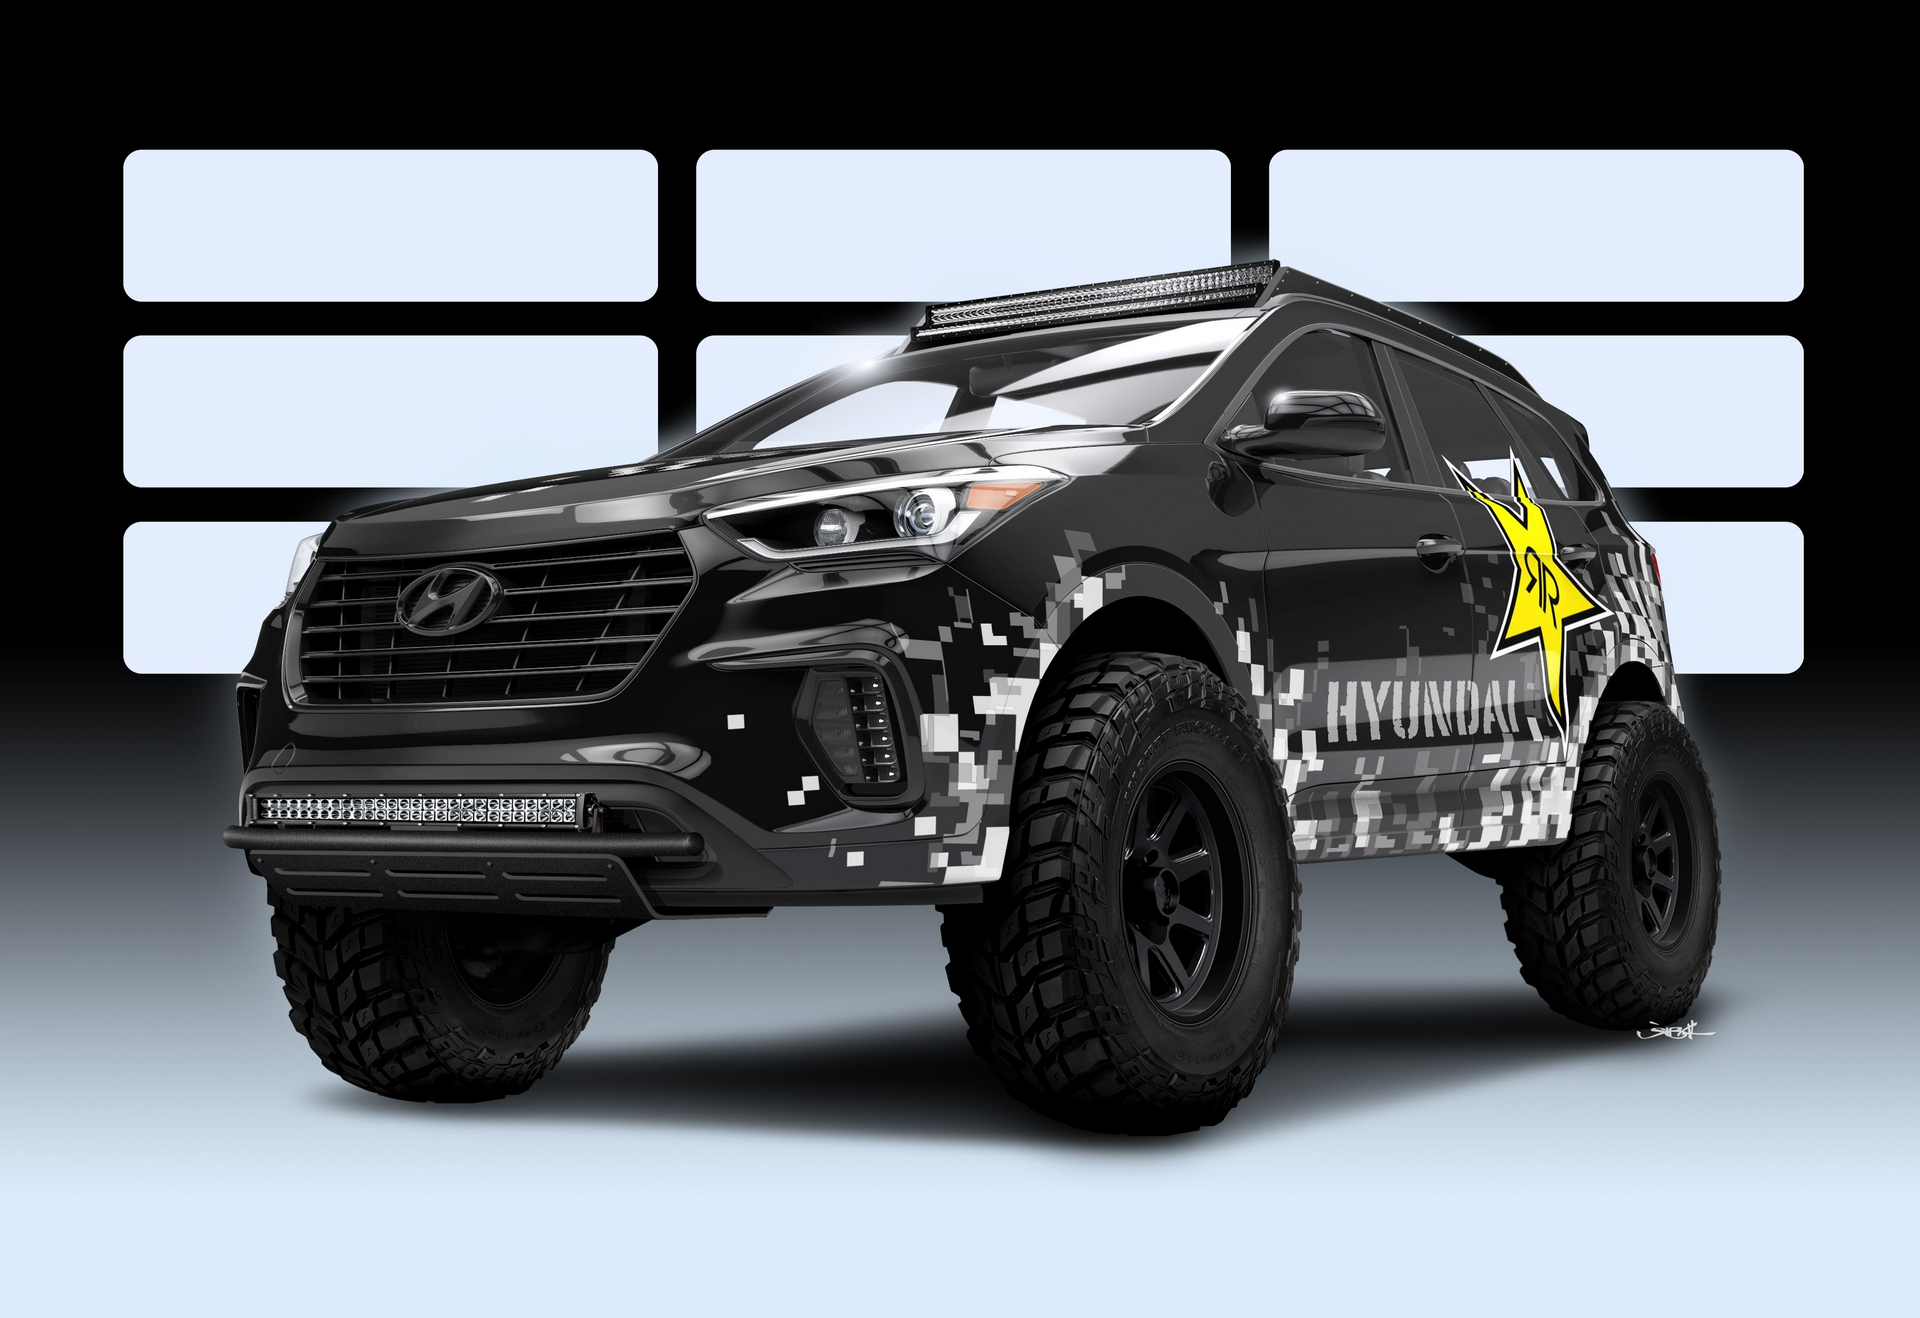 HYUNDAI TEAMS WITH ROCKSTAR PERFORMANCE GARAGE TO CREATE NITROUS-BASED ROCKSTAR SANTA FE CONCEPT OFF-ROADER FOR 2016 SEMA SHOW © Hyundai Motor Company